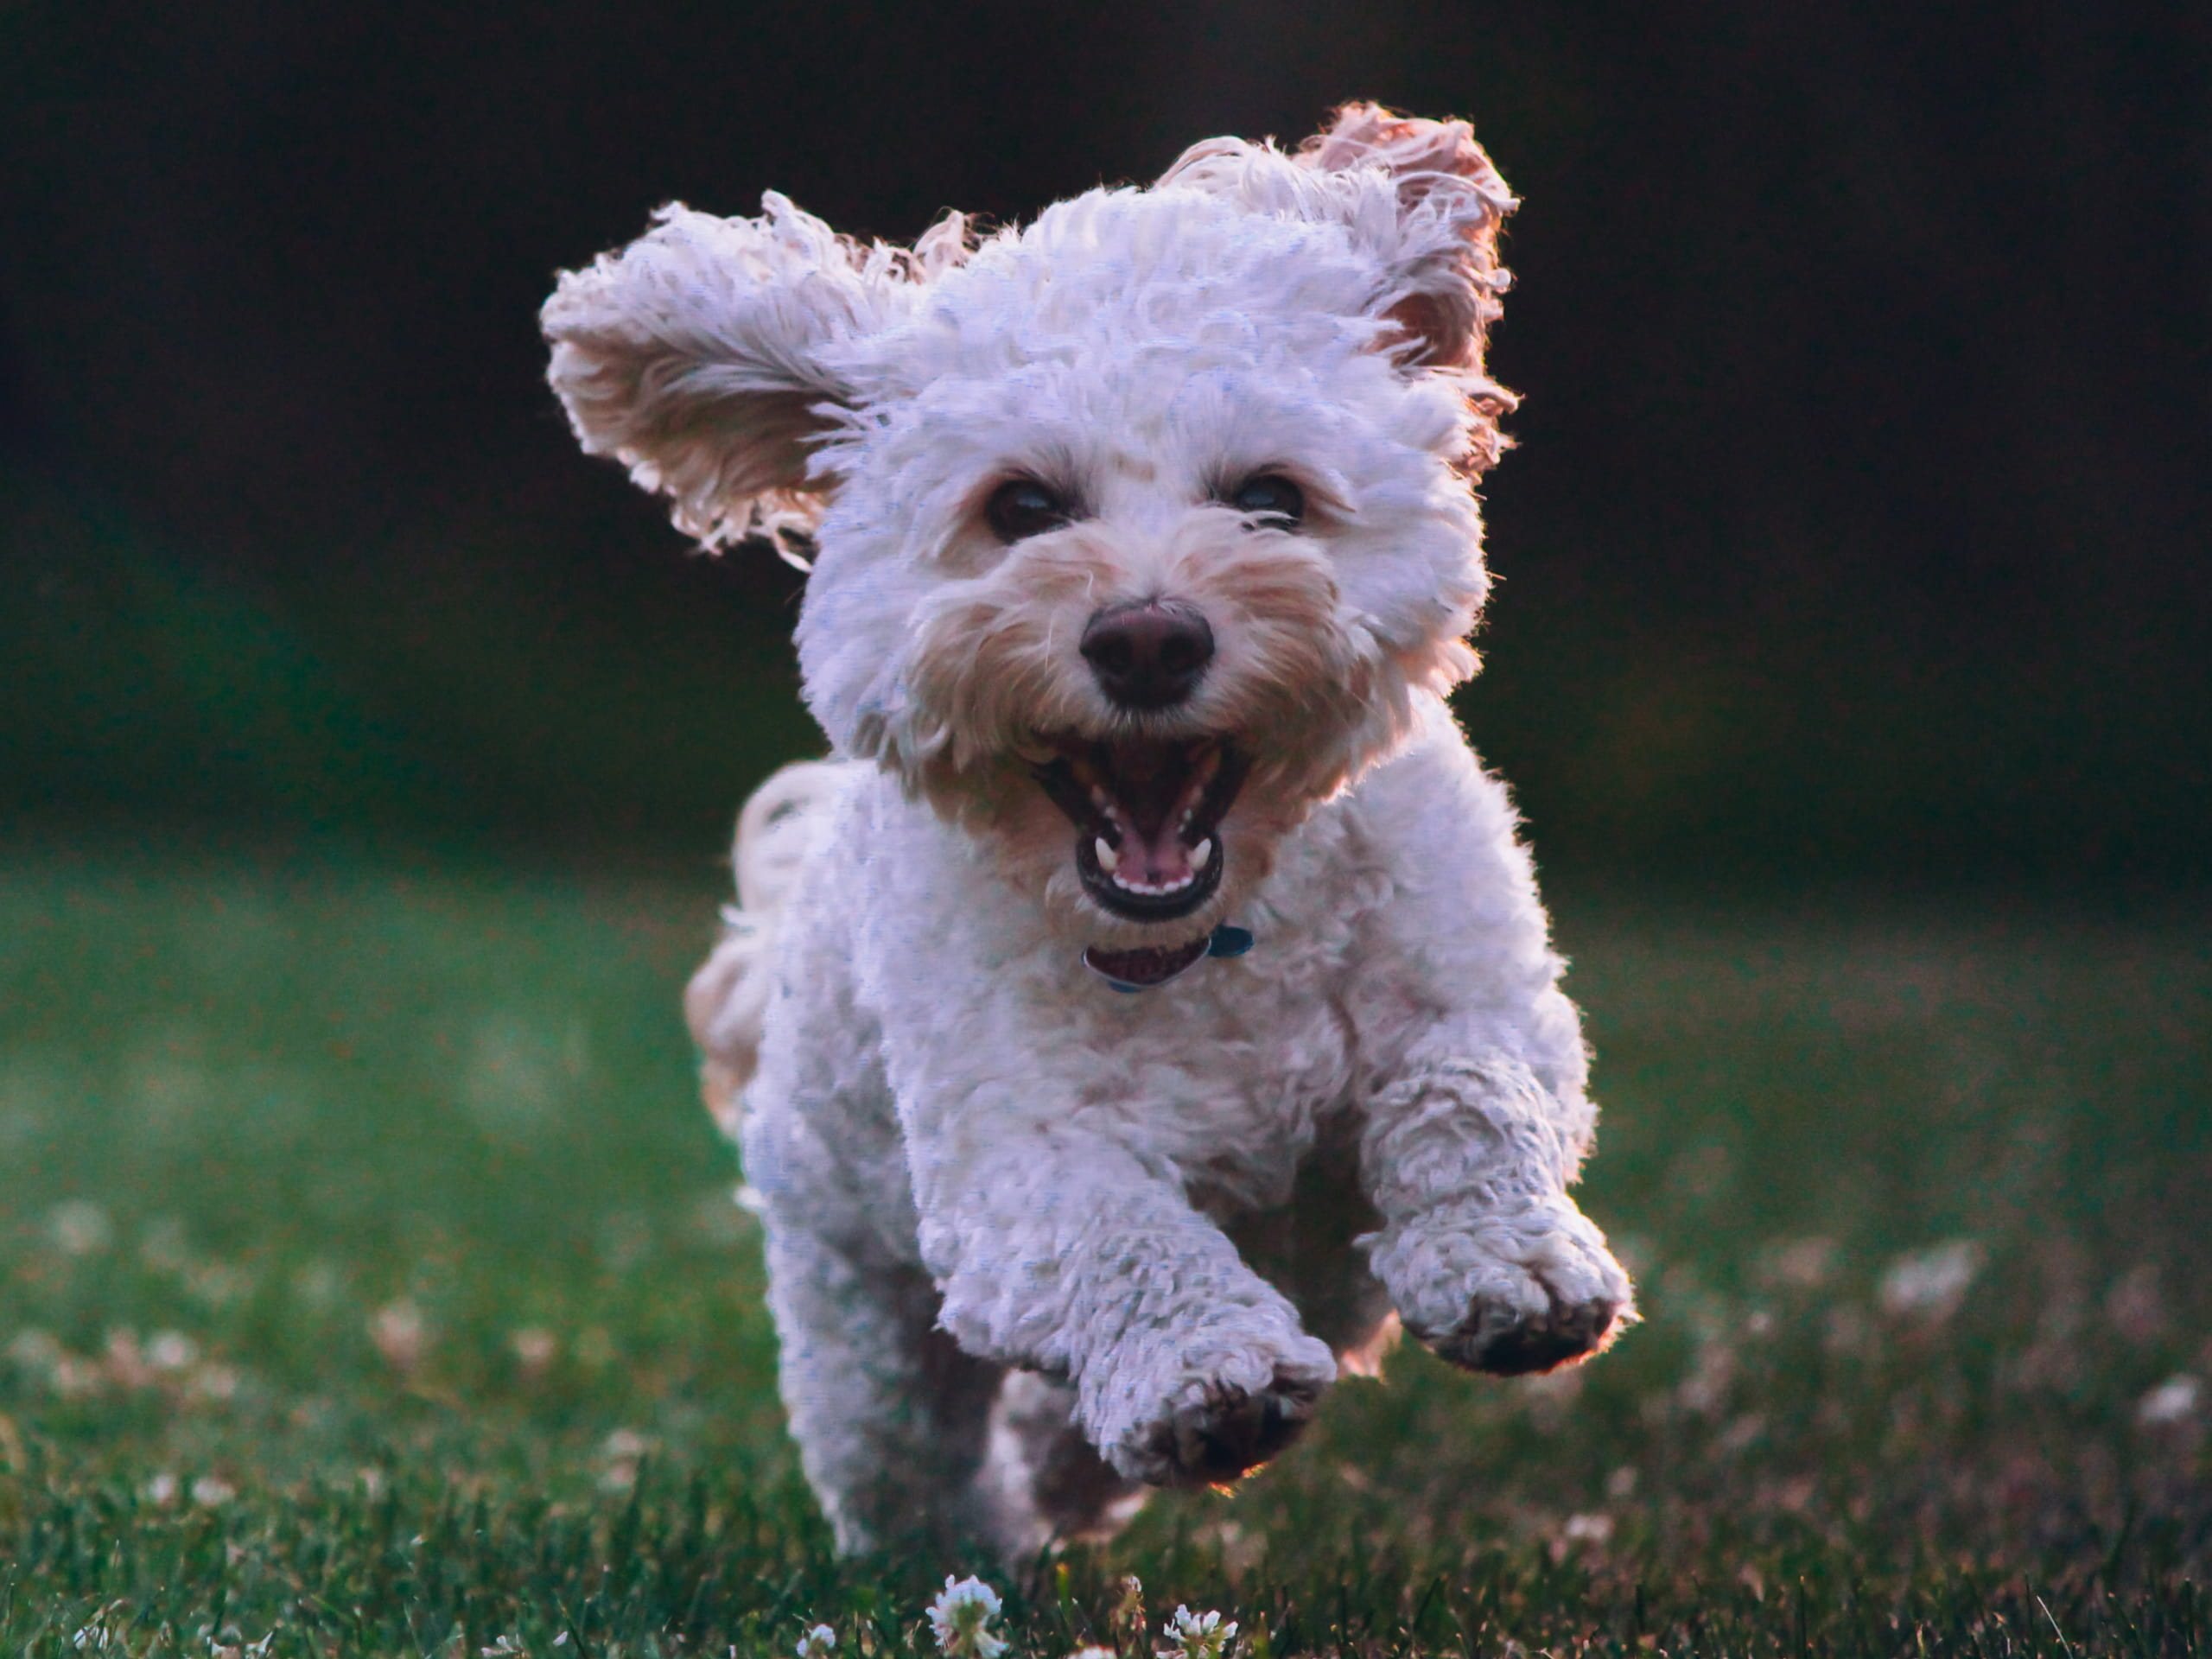 A small dog running around in the grass, mid-stride, with the front two paws in the air.